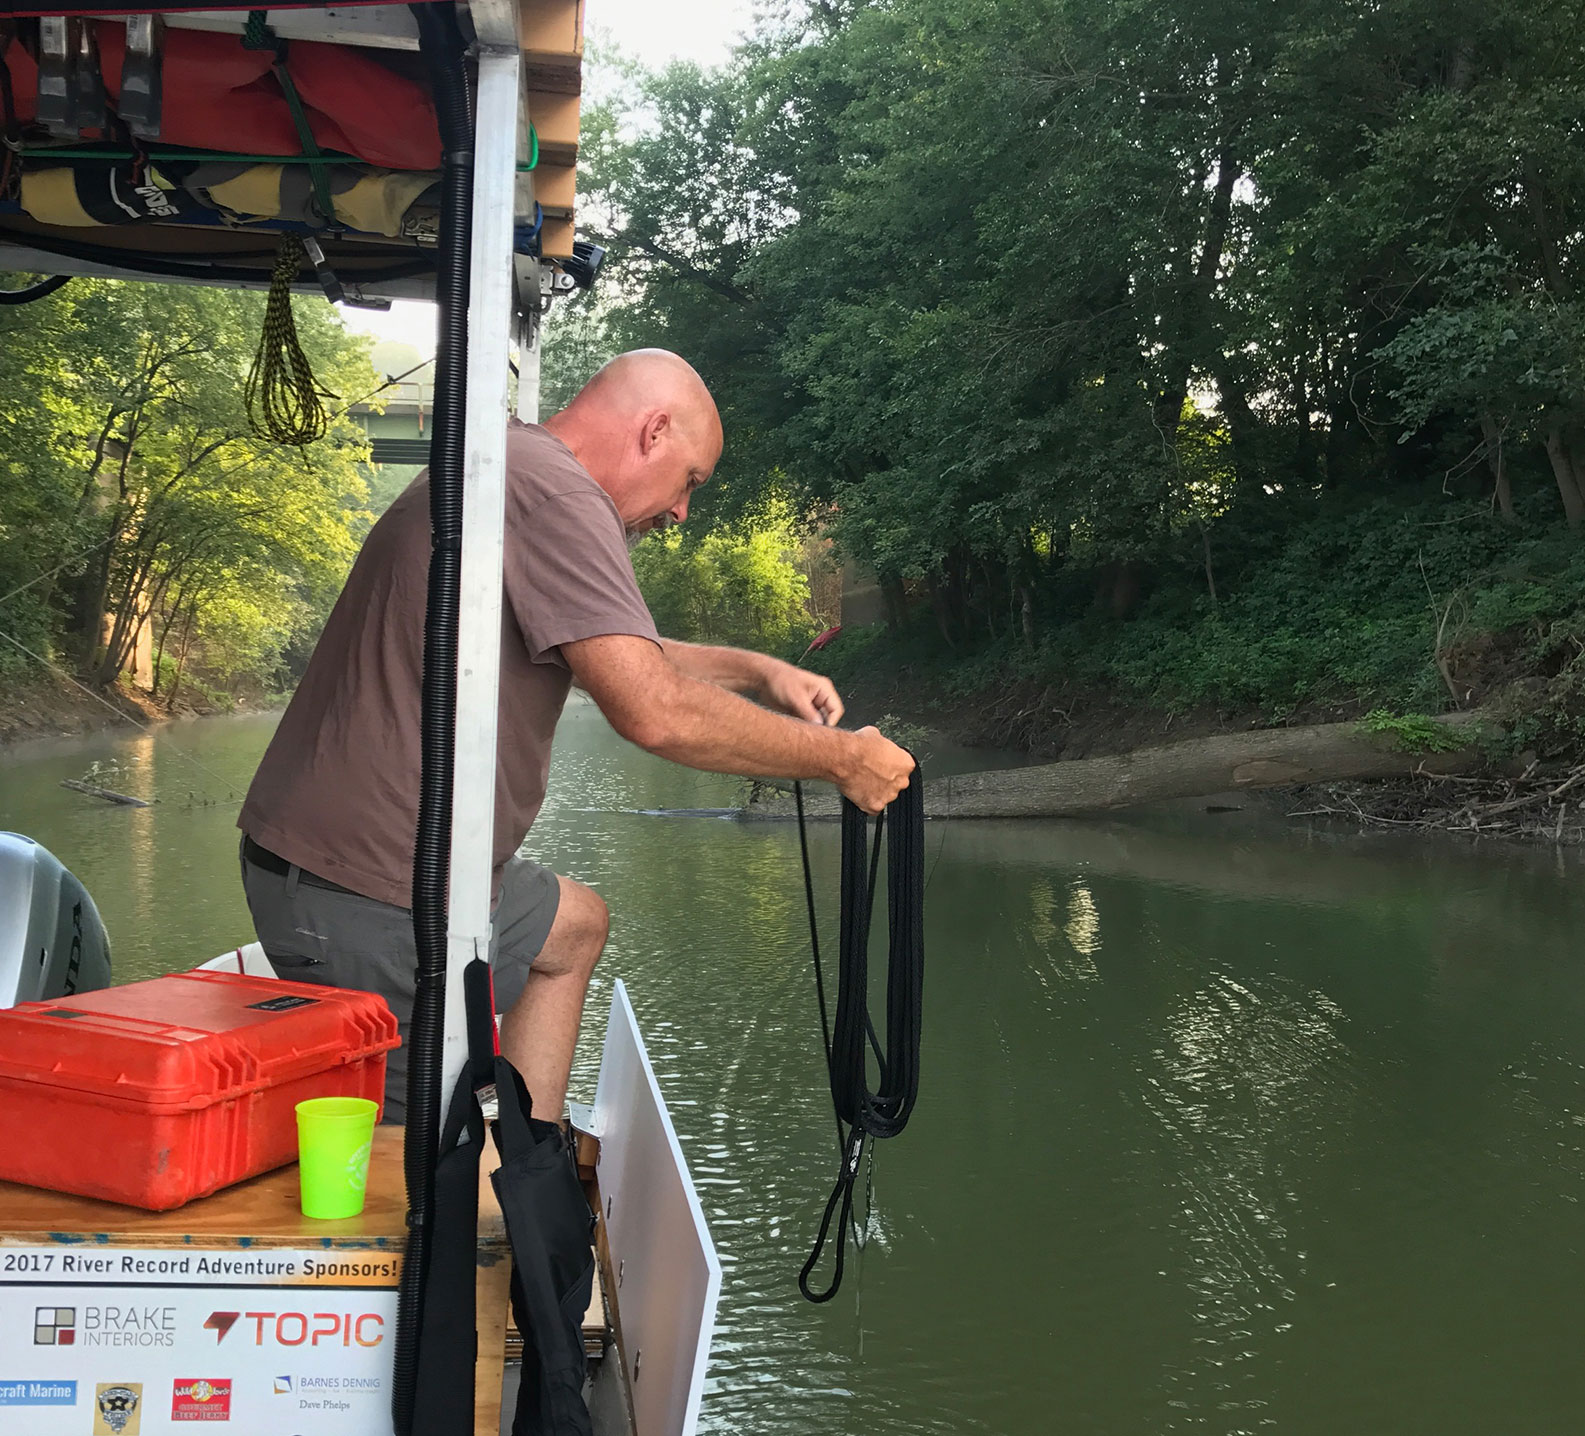 Marc Phelps sorting his boat lines over the water